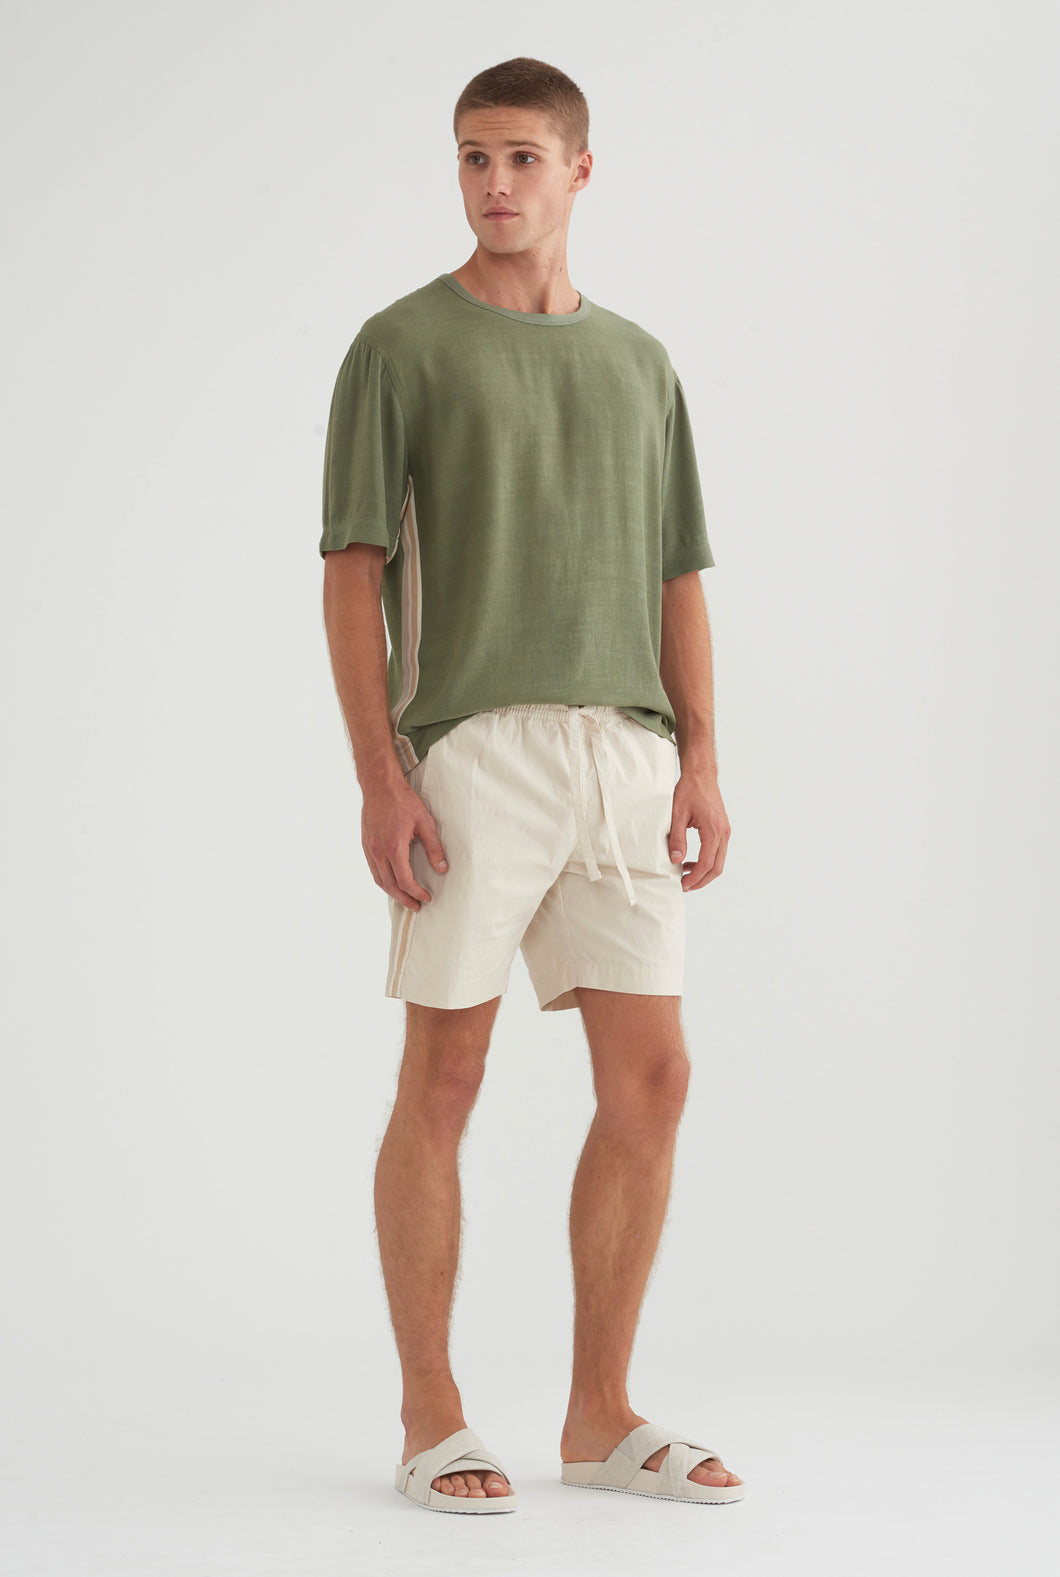 Cotton Stretch Short - Stone/Taupe Tape